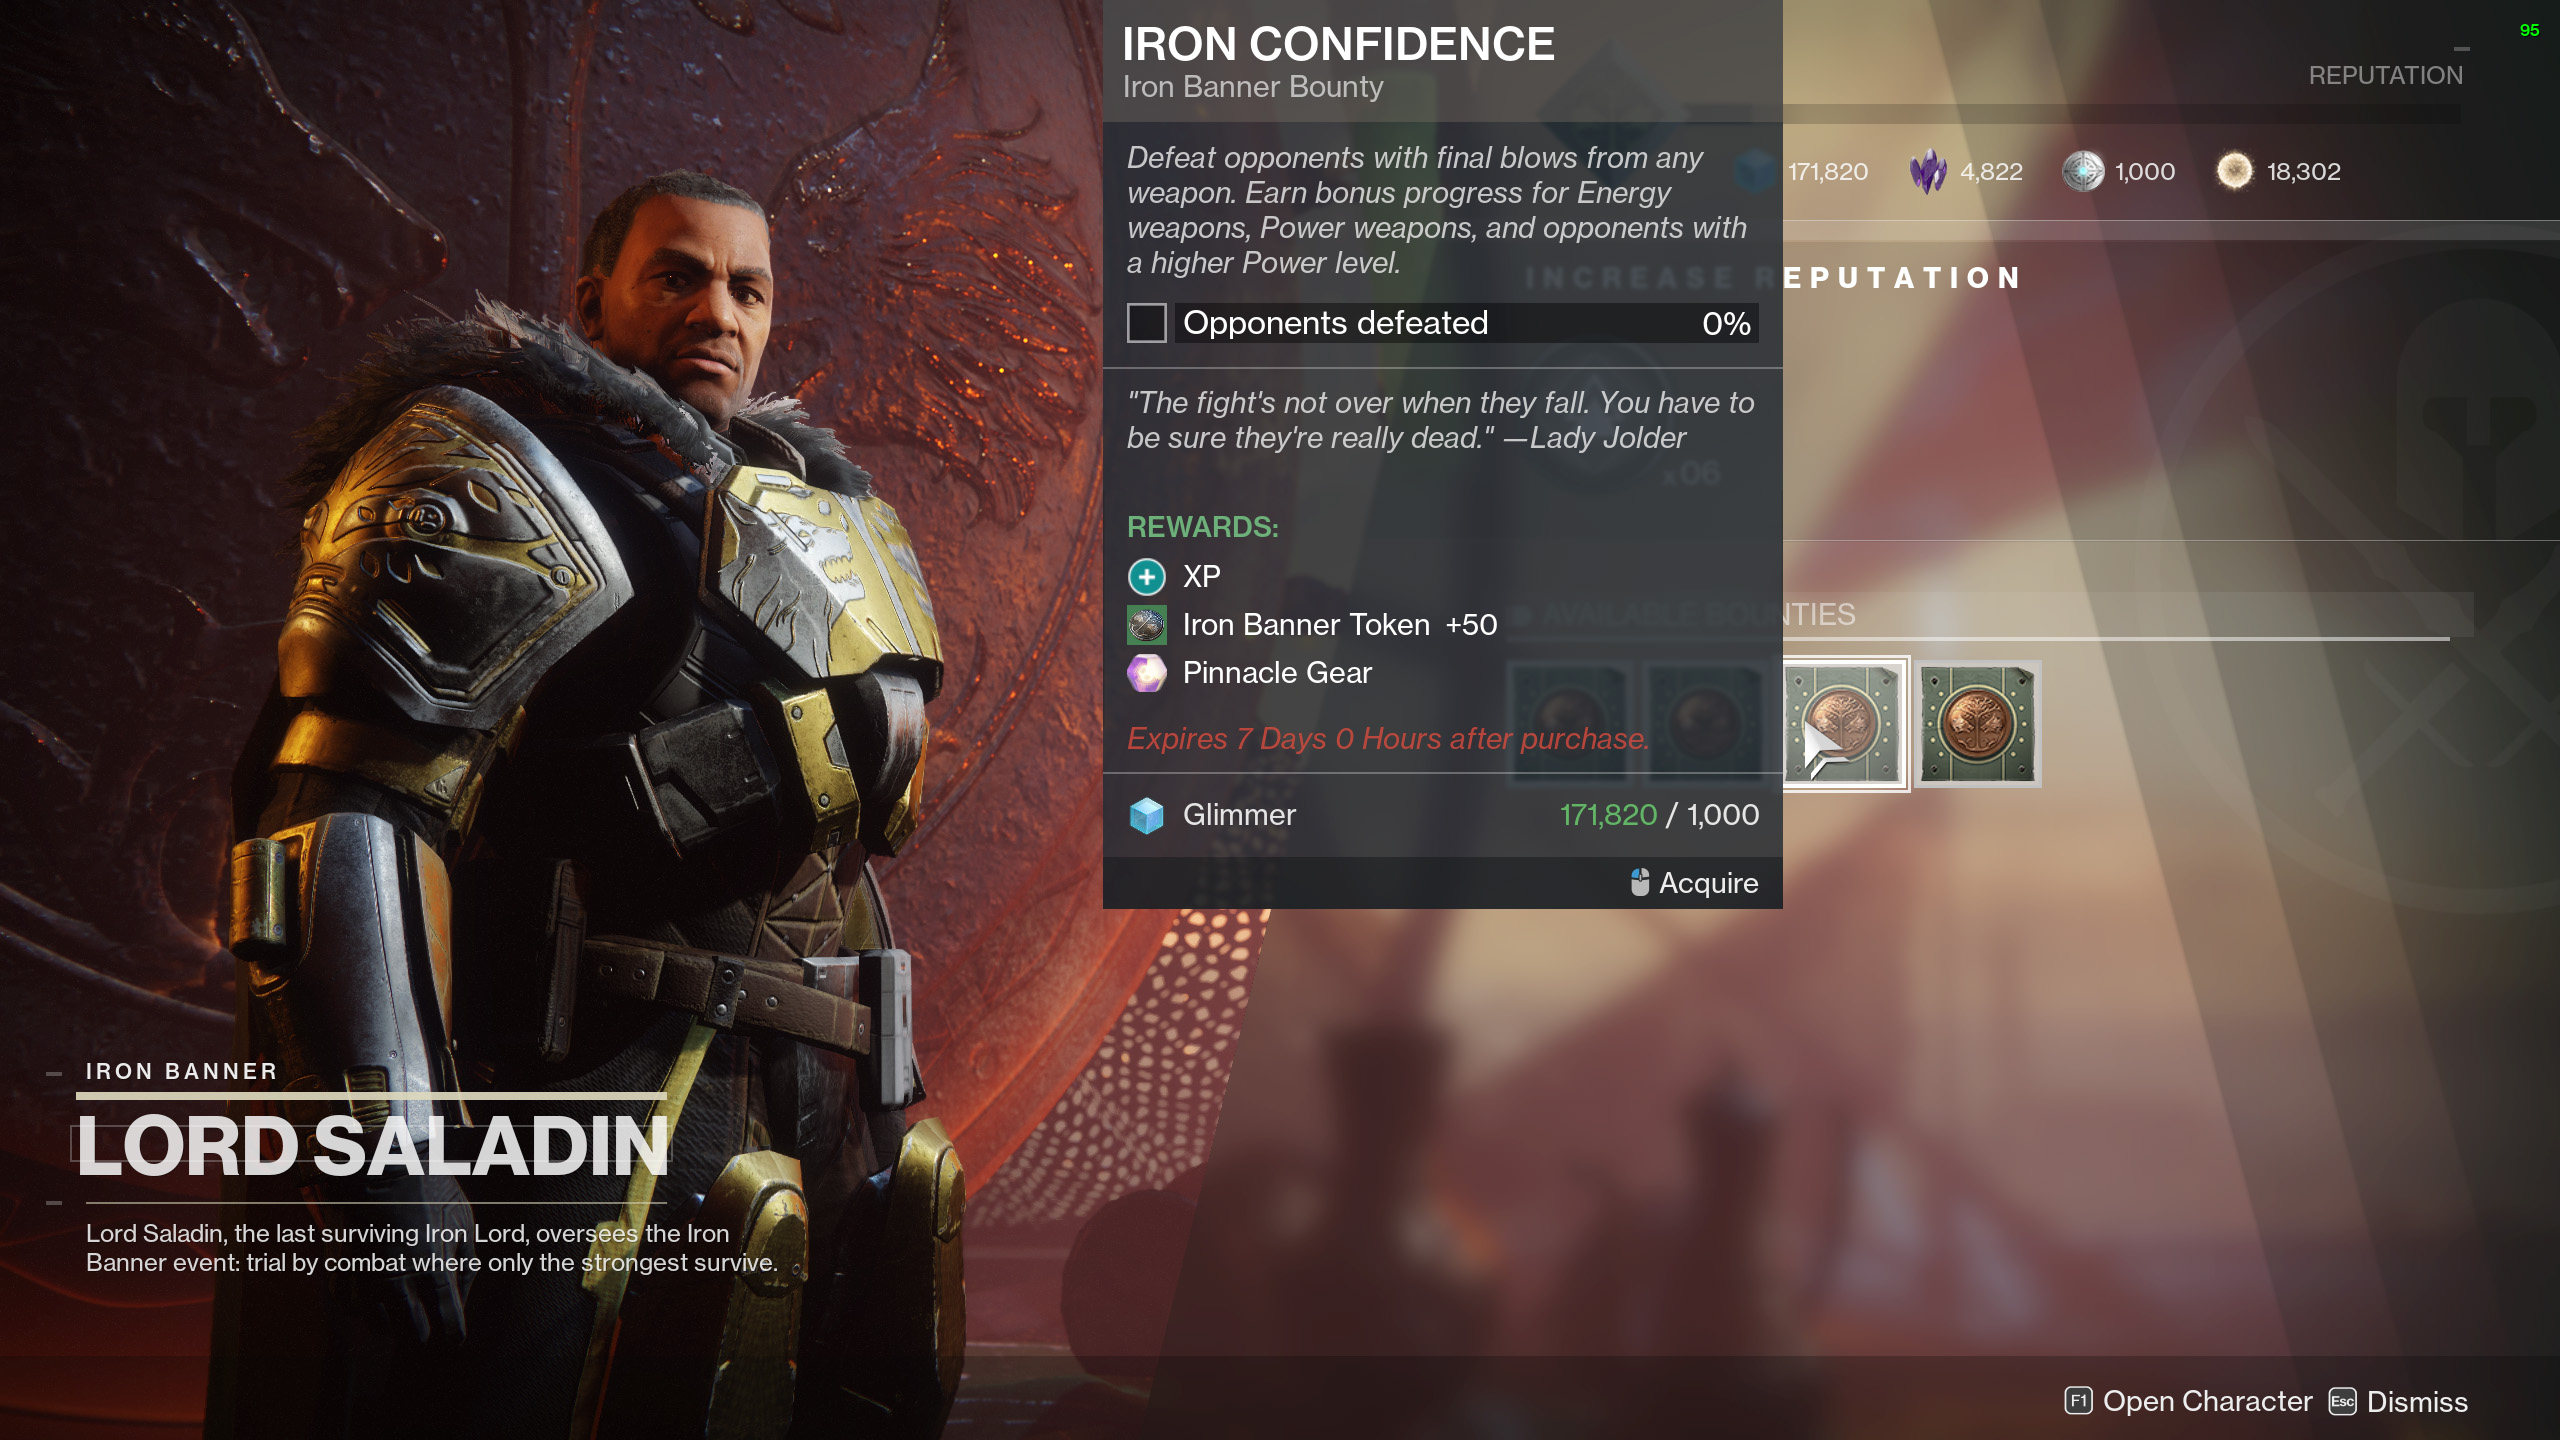 iron confidence bounty iron banner destiny 2